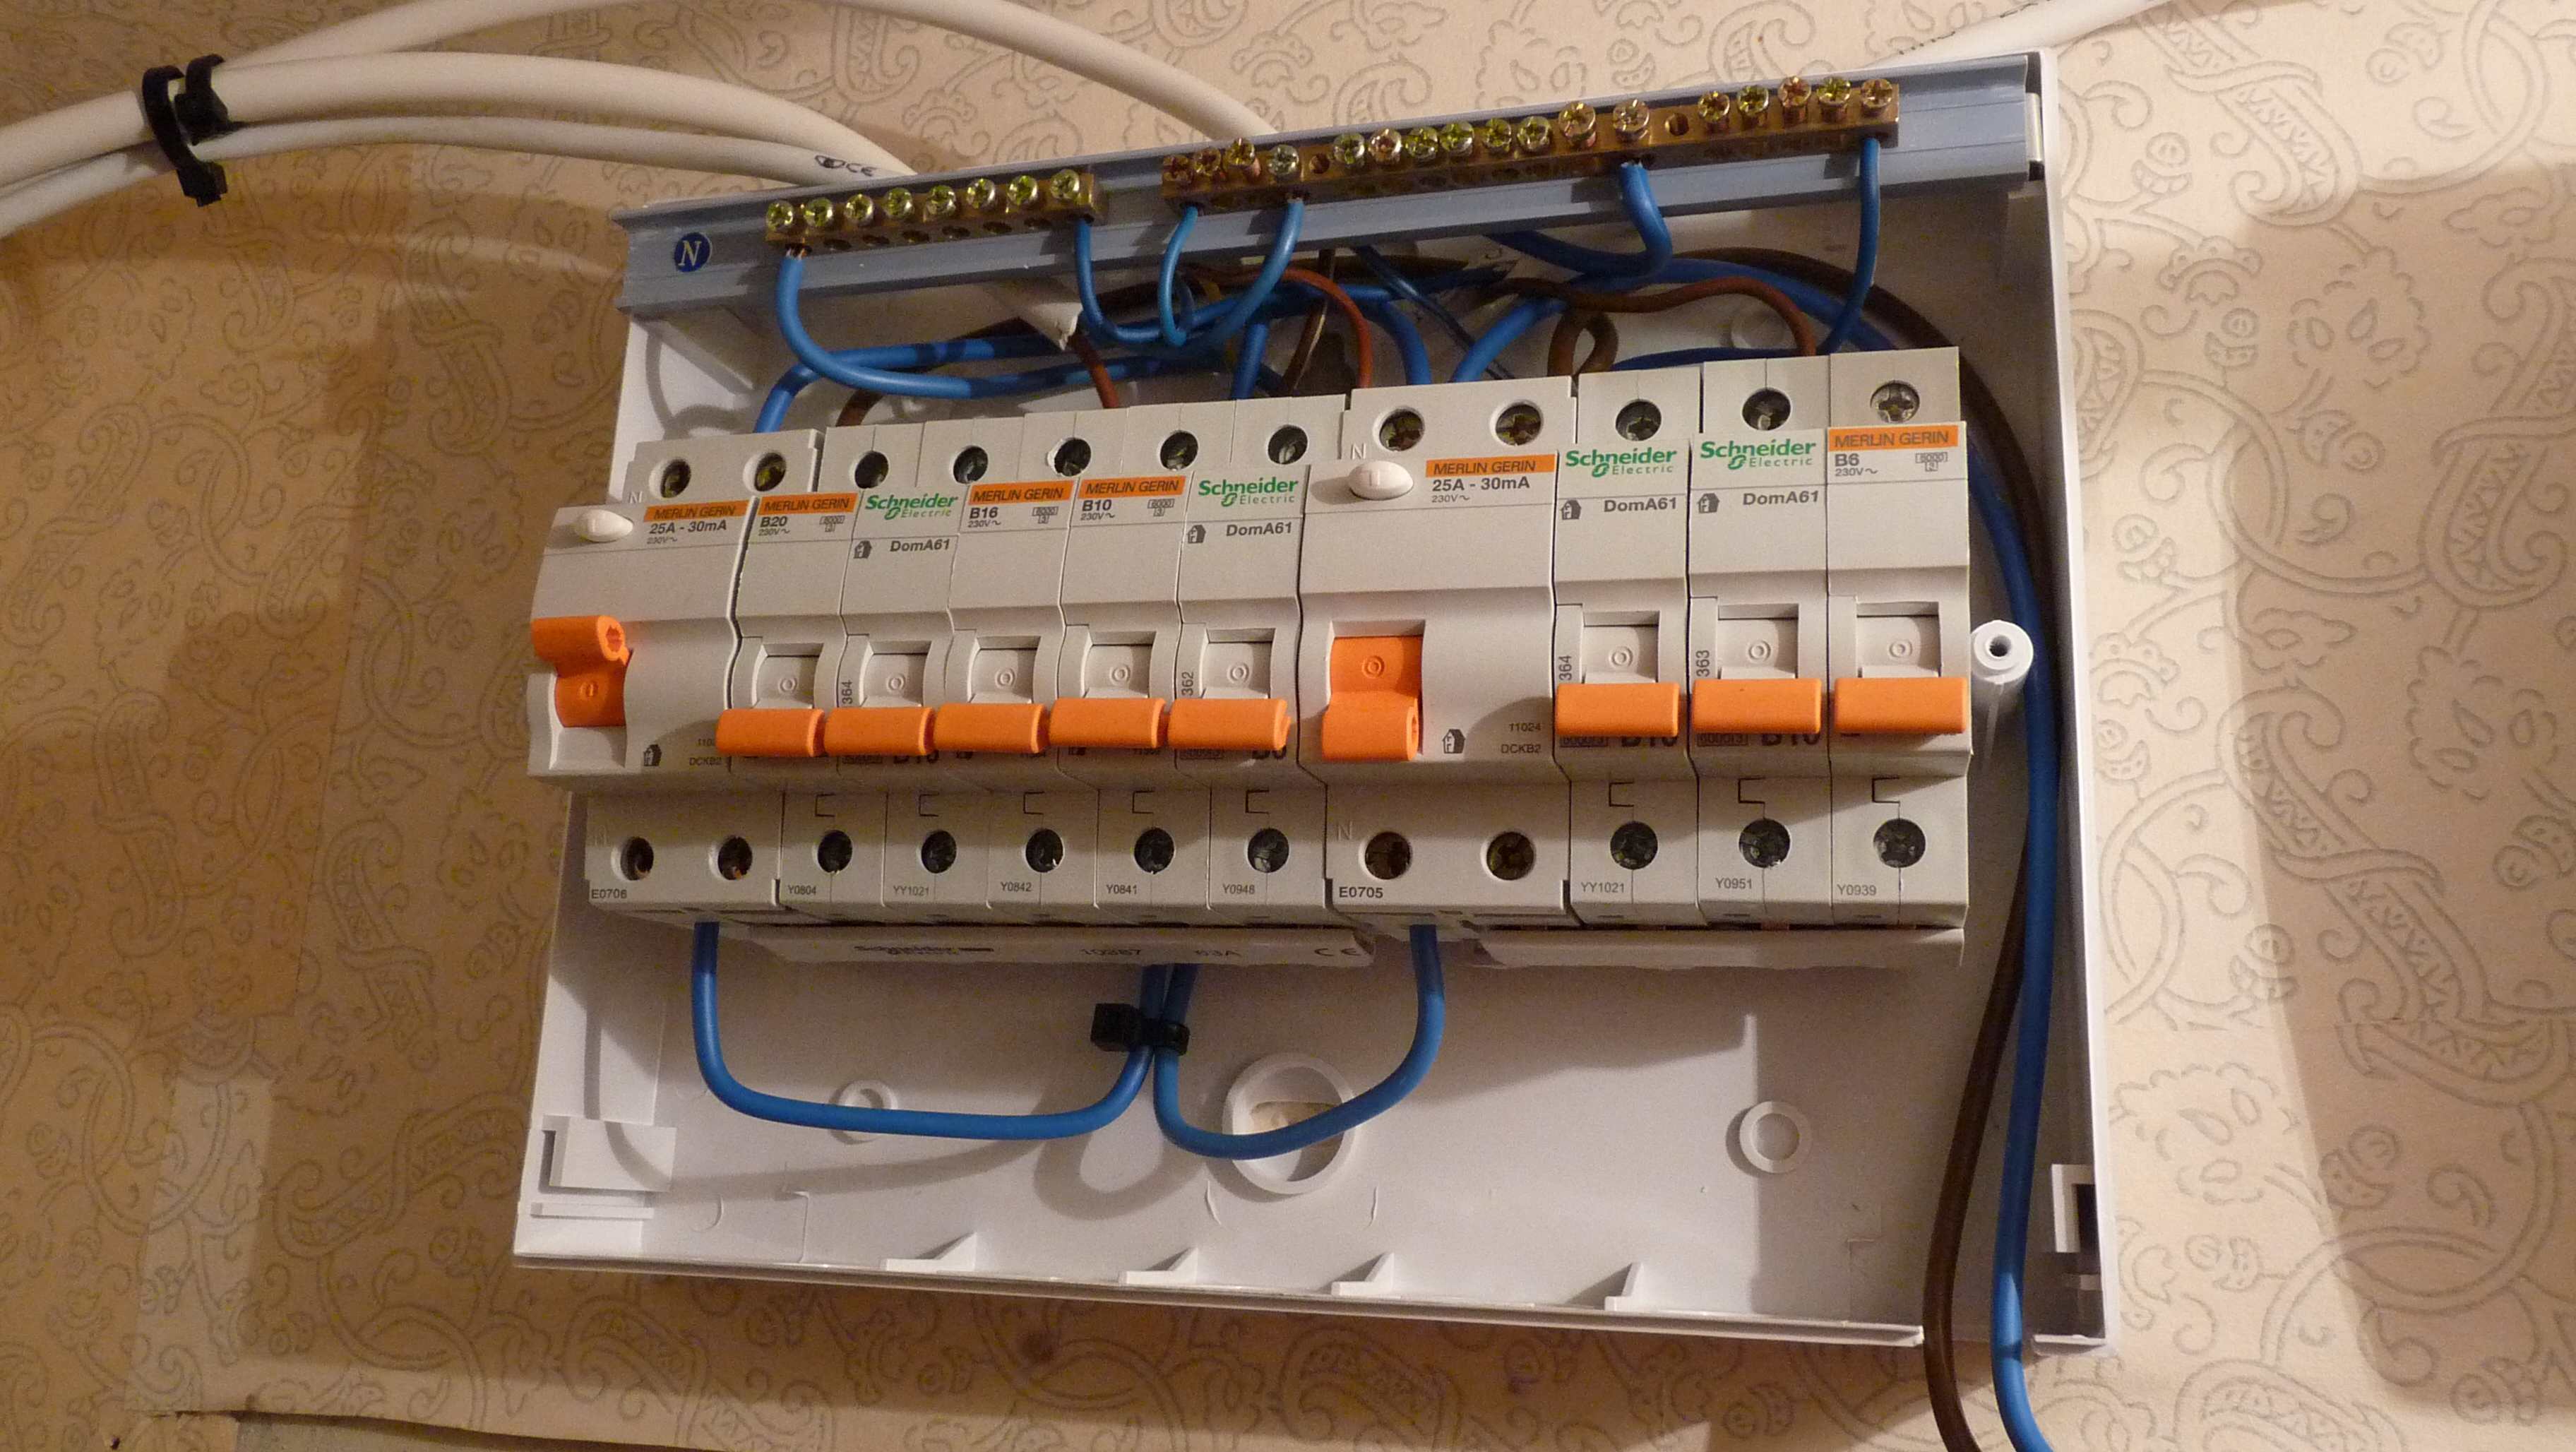 Wiring a fuse board wire center file wiring of european fuse box jpg wikimedia commons rh commons wikimedia org wiring a fuse box and outlets wiring a distribution board asfbconference2016